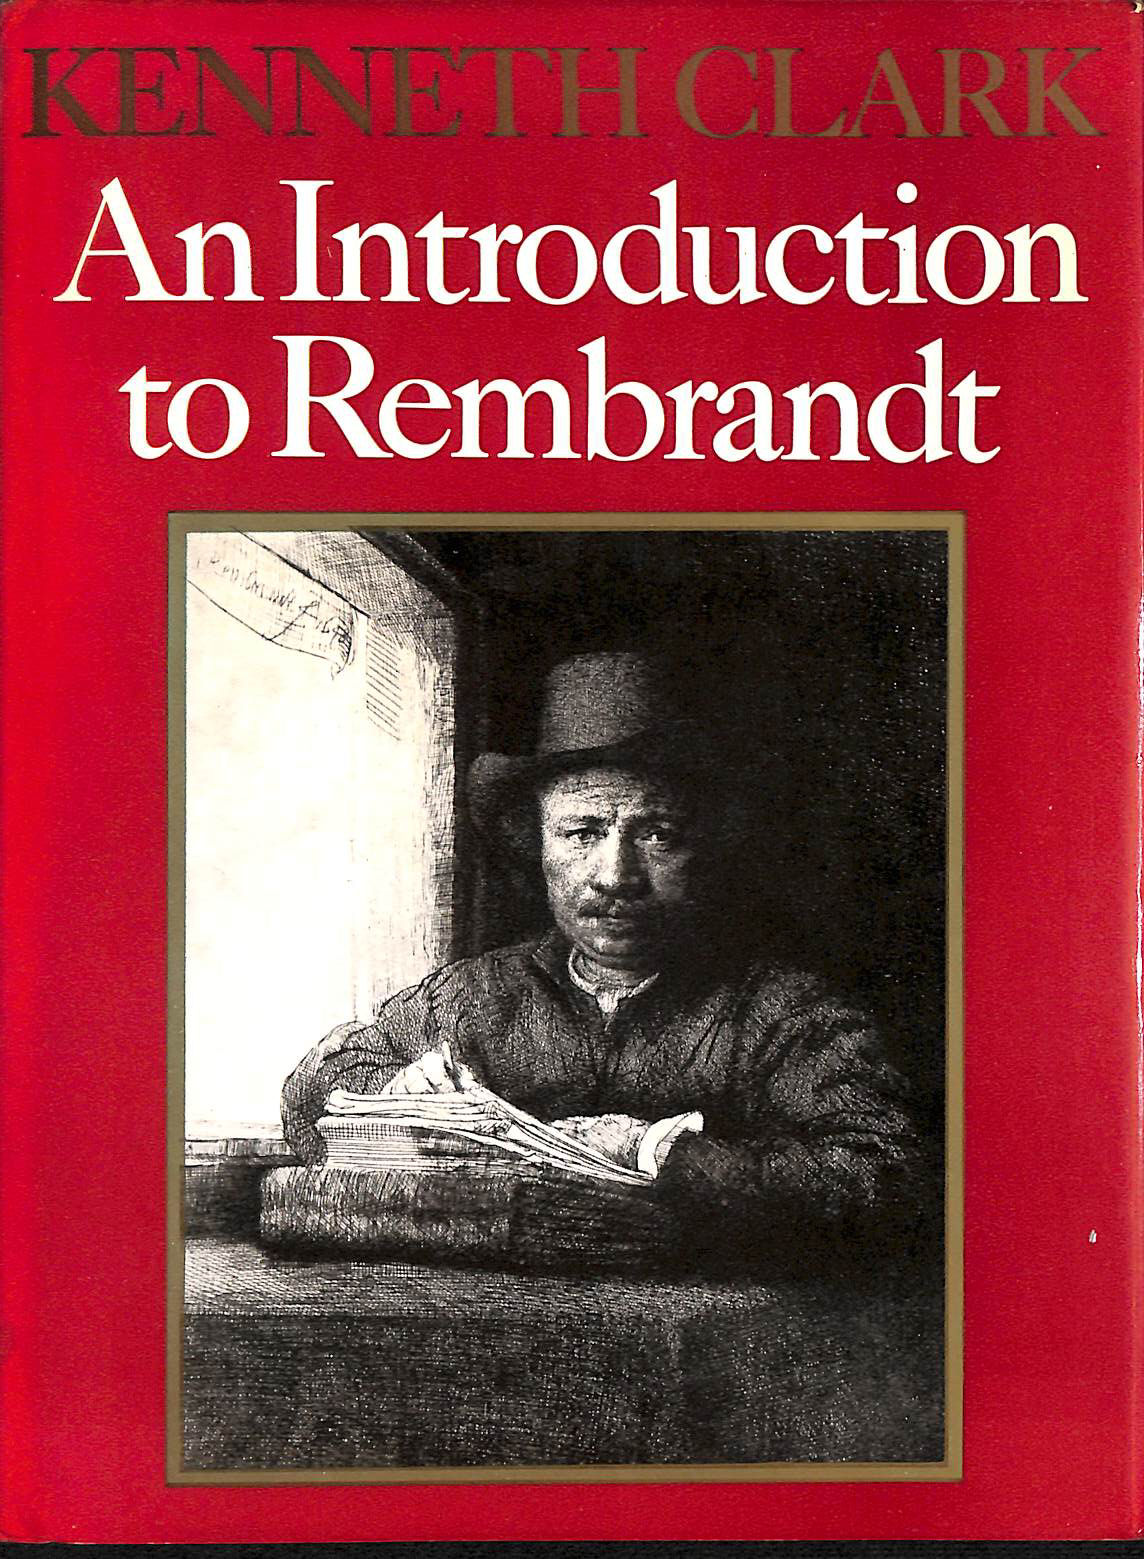 KENNETH CLARK - An Introduction To Rembrandt